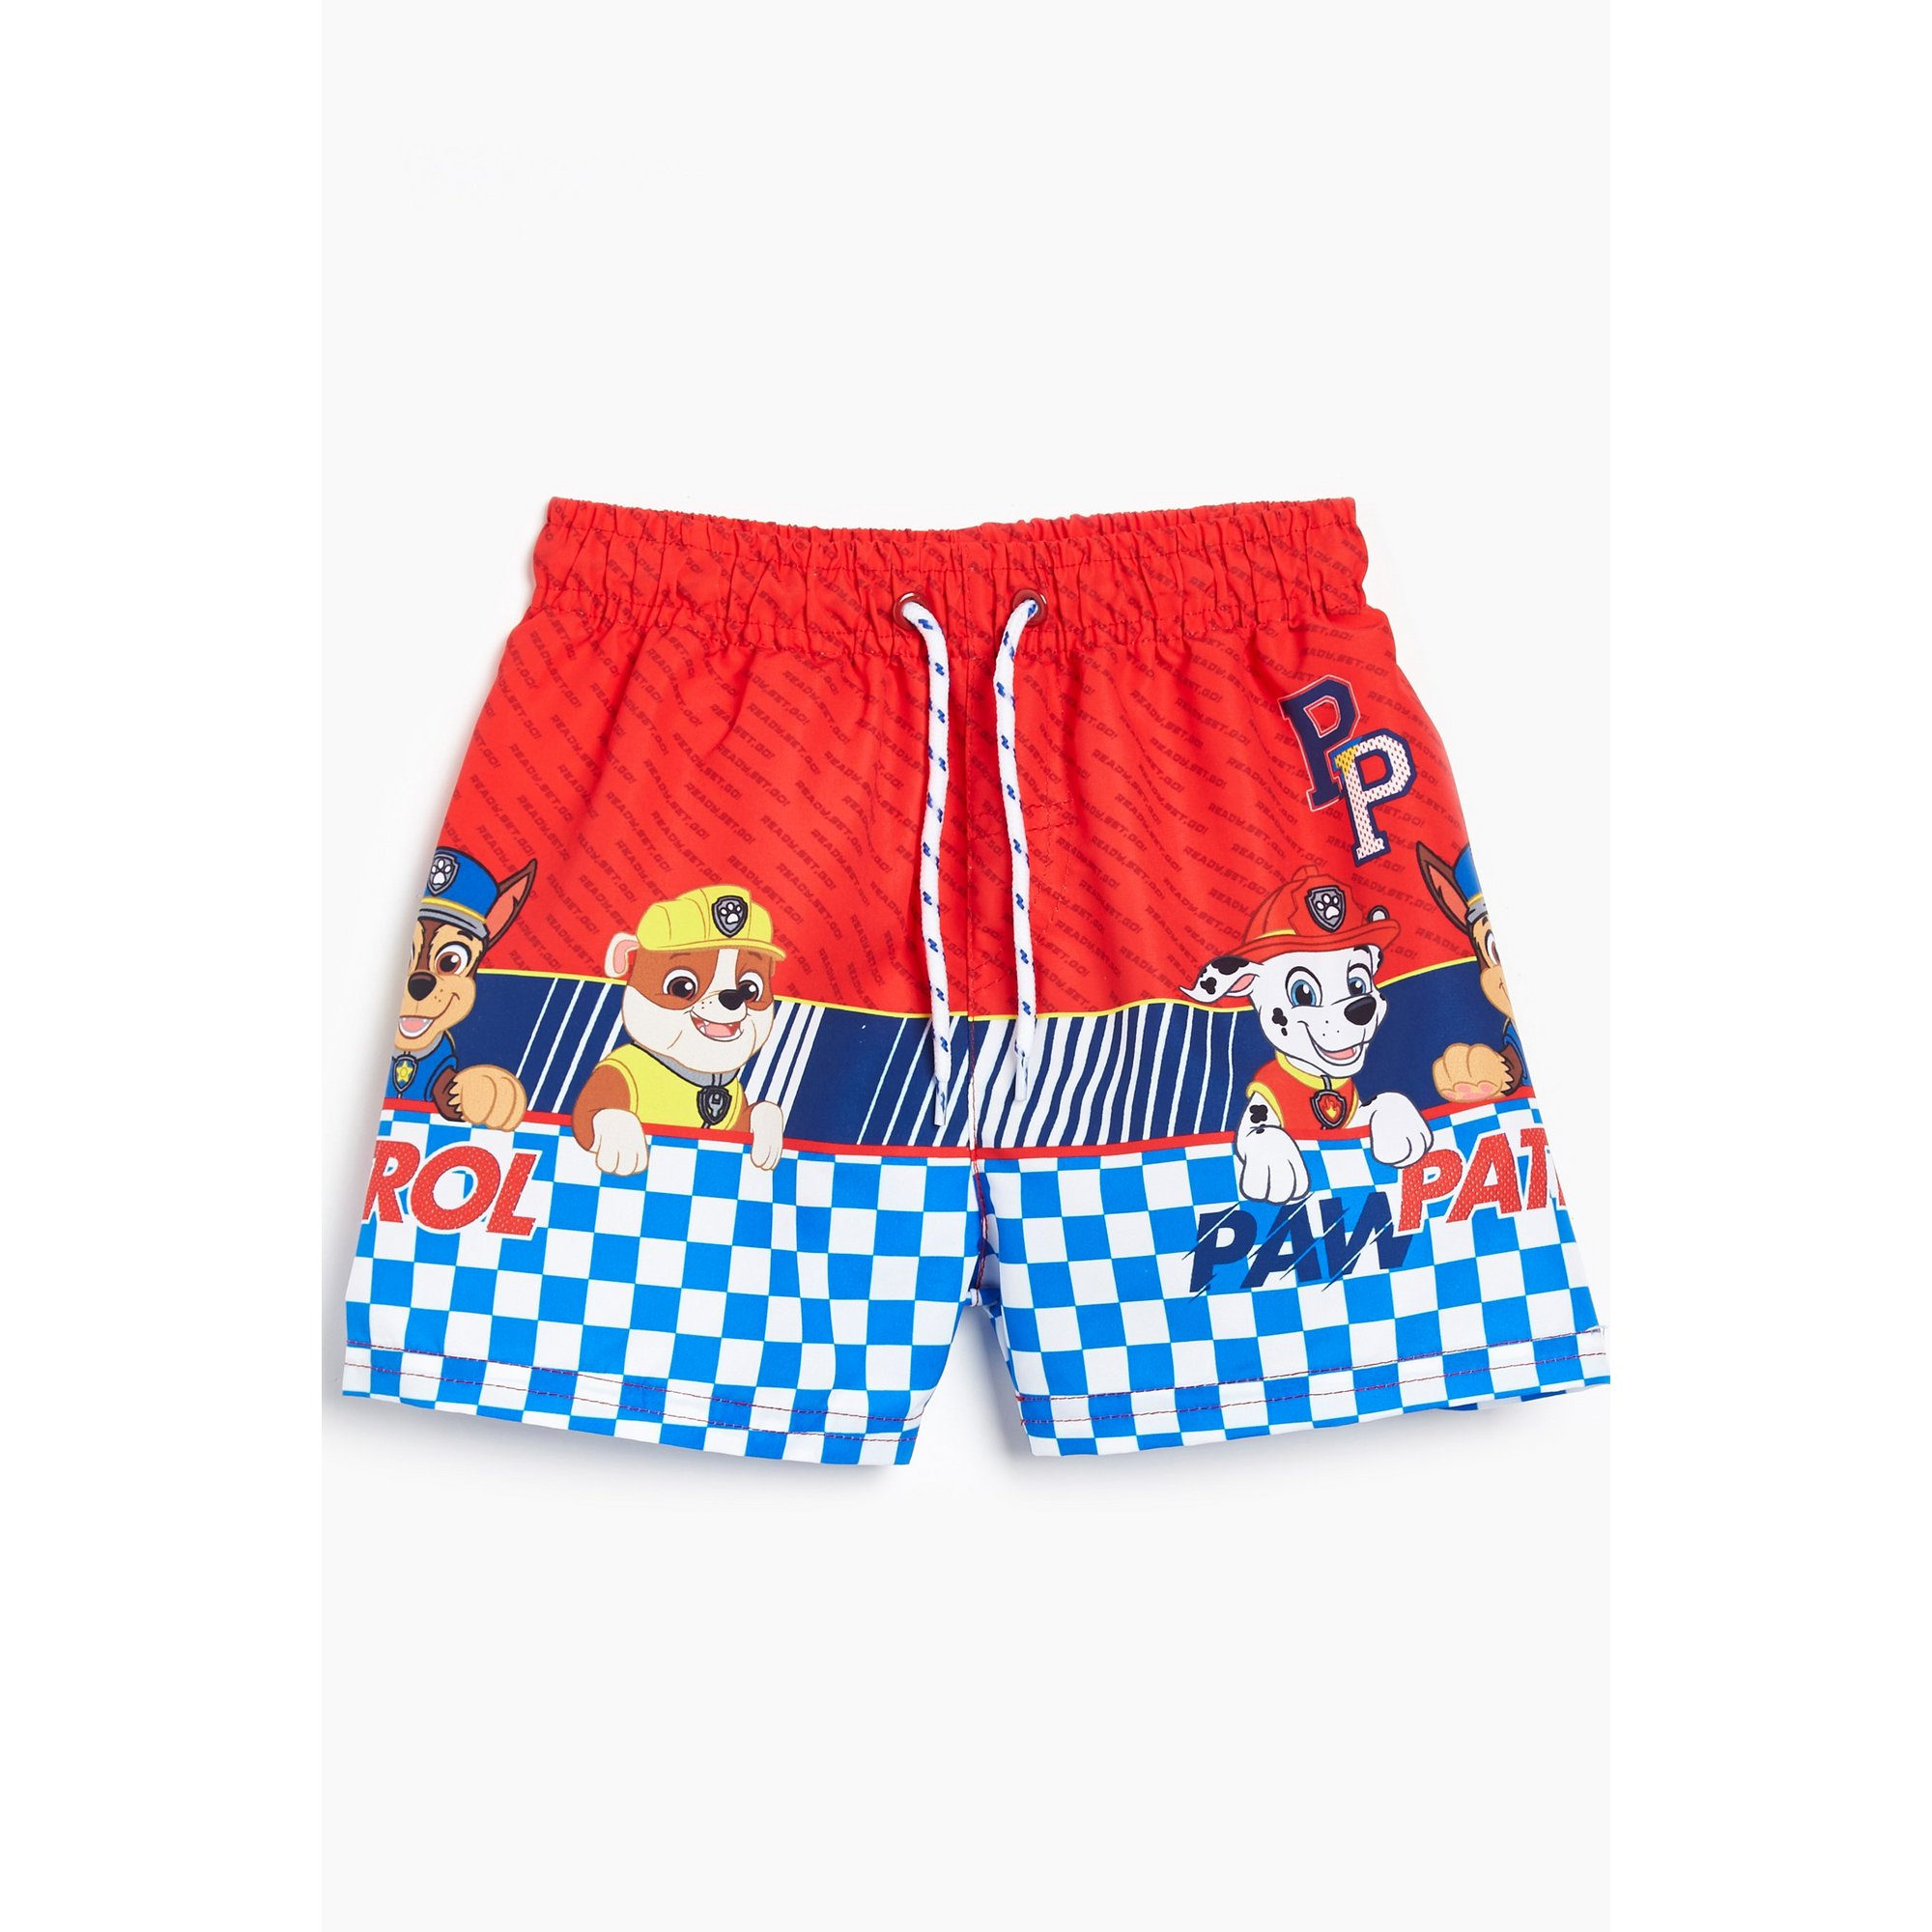 Image of Younger Boys Blue Chequered Paw Patrol Swim Shorts